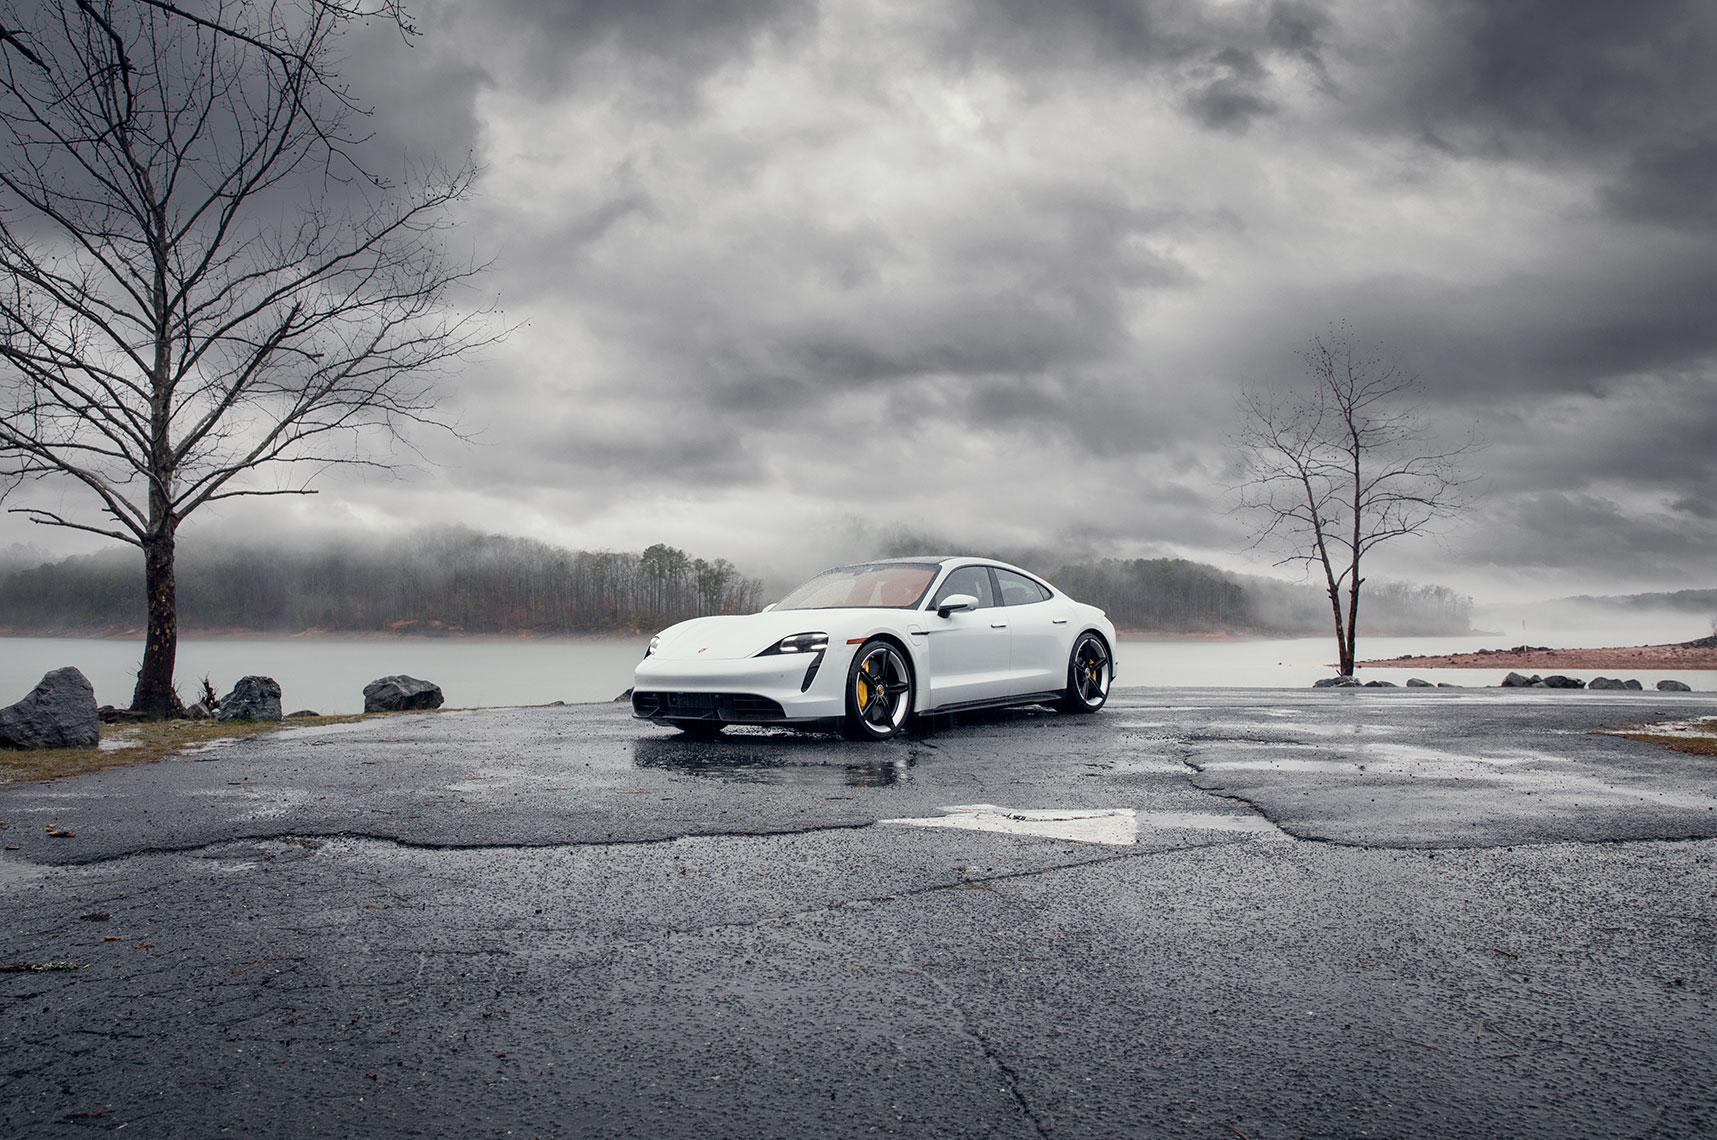 Porsche-Taycan-Road-Track-Commercial-Photoshoot